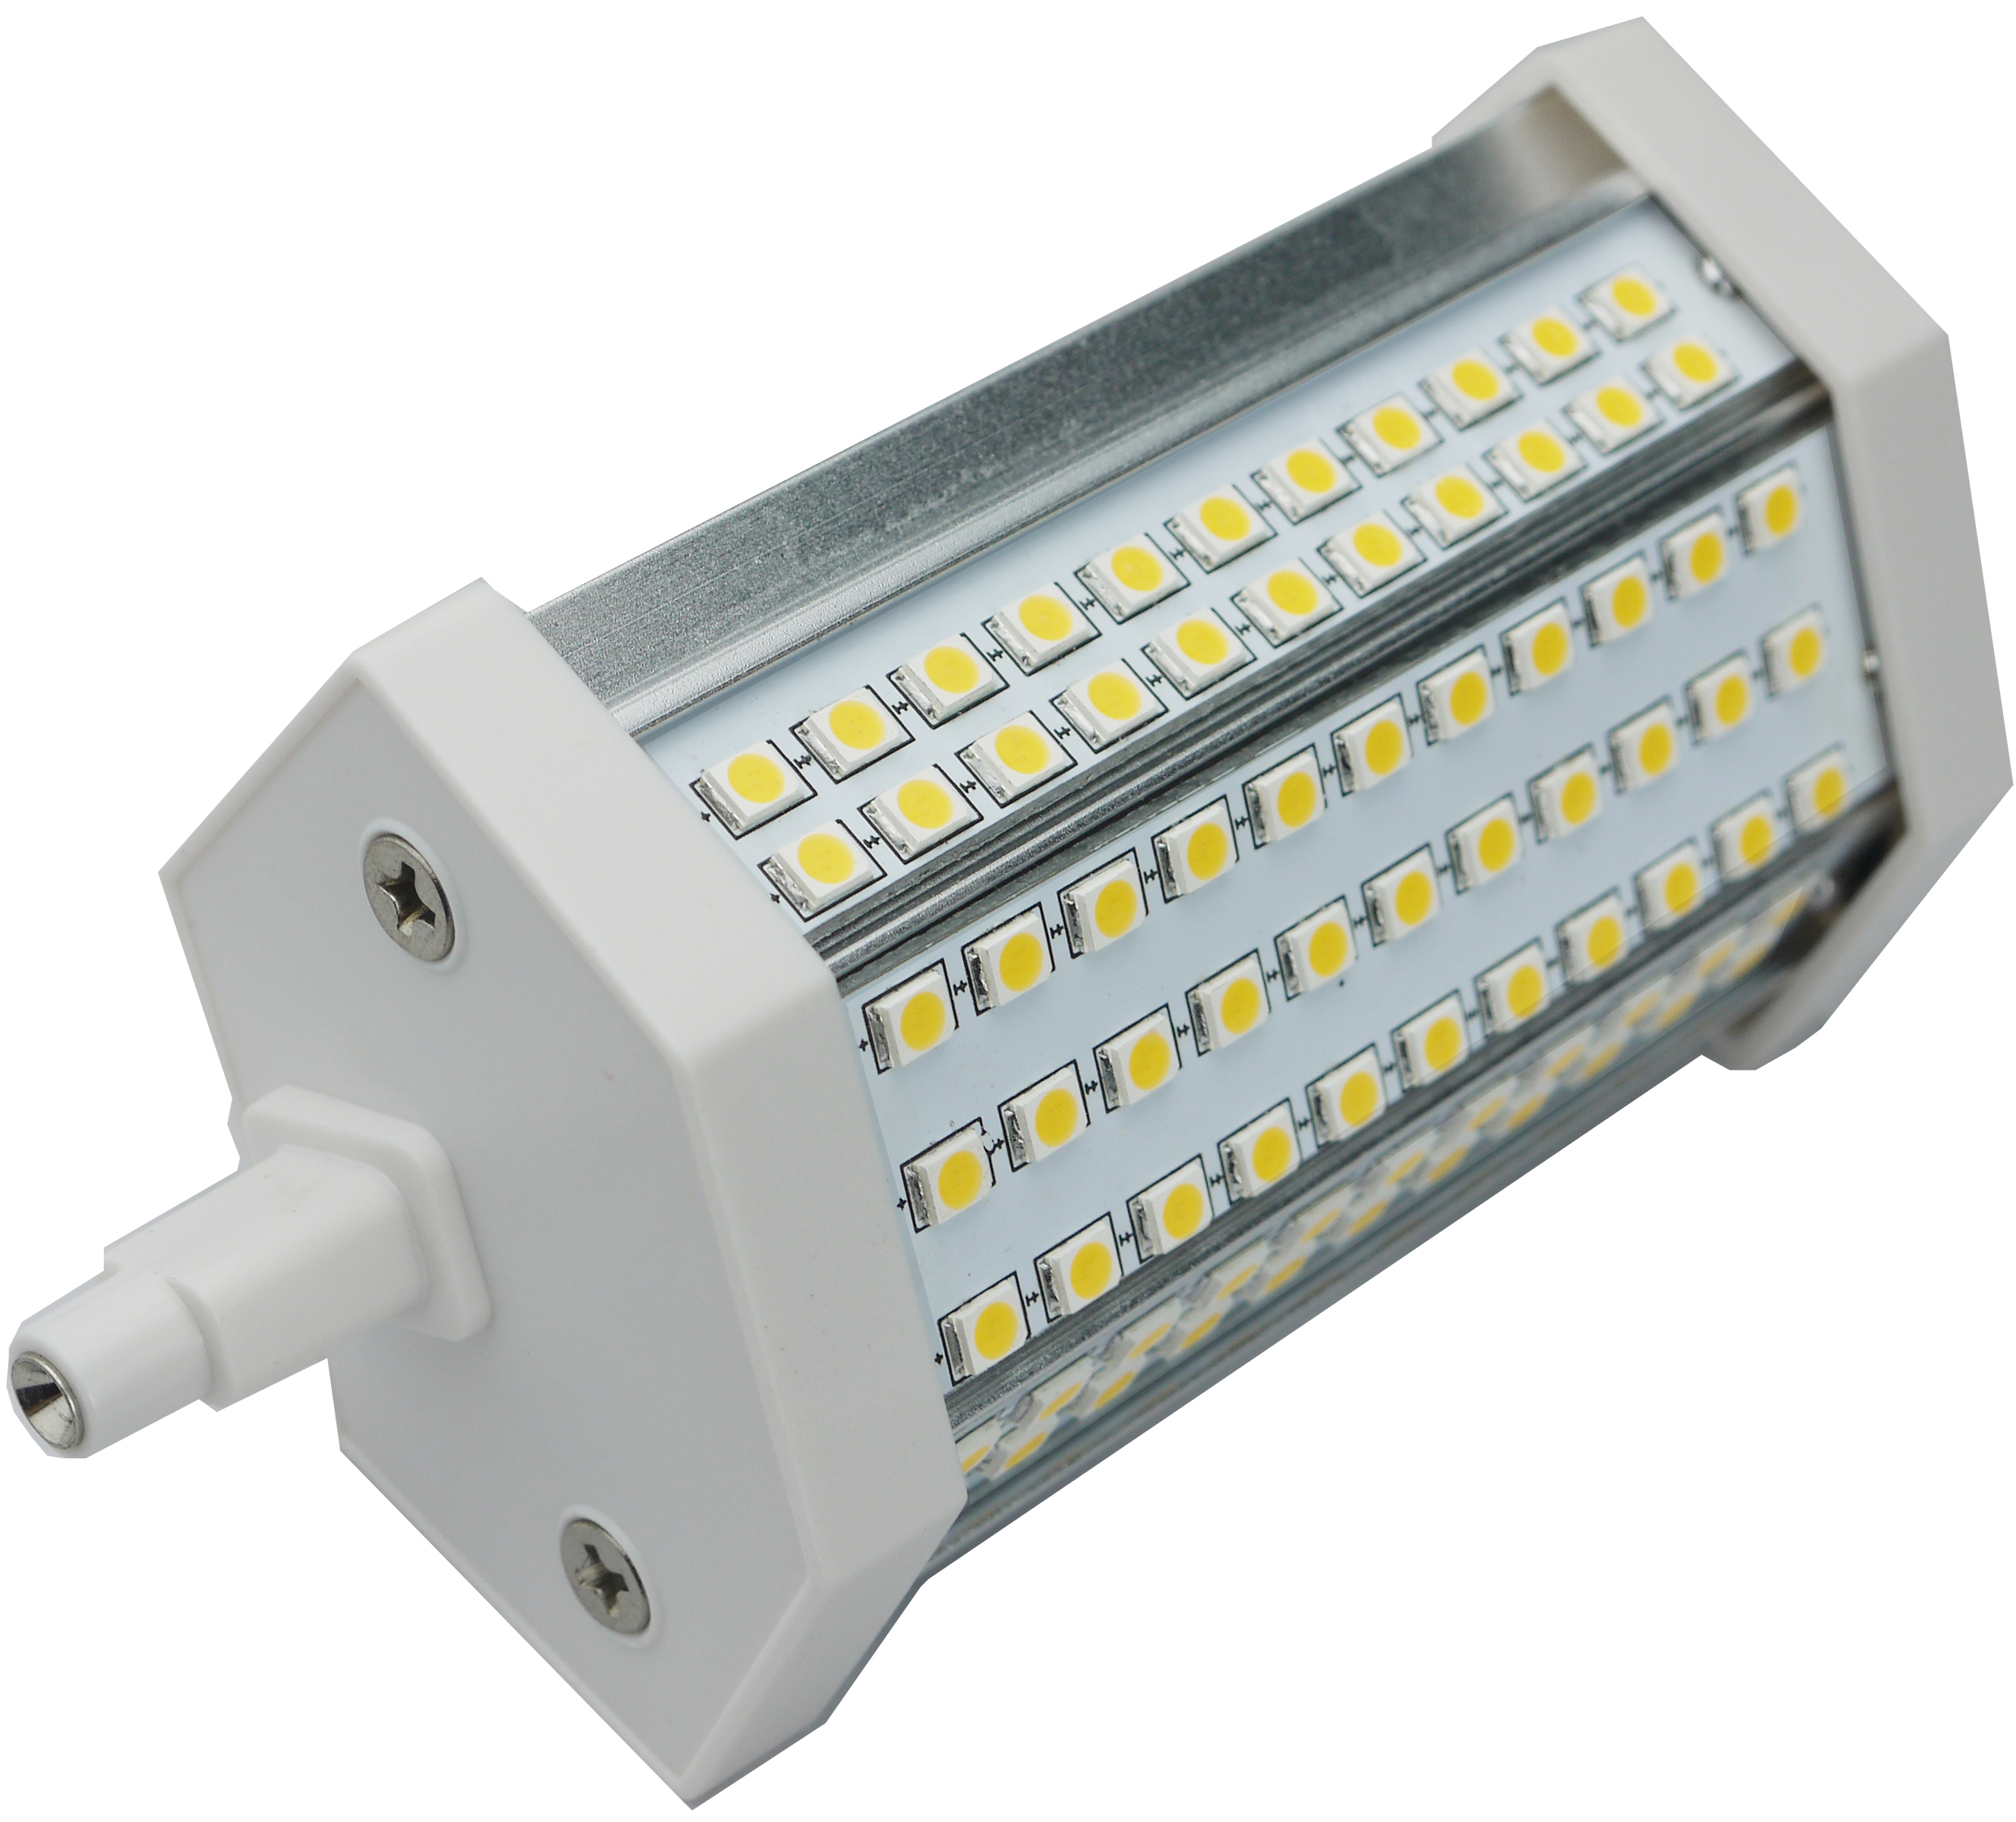 78mm 118mm 135mm 10W 30W New <strong>LED</strong> <strong>R7S</strong> Hot Sale <strong>j118</strong> <strong>r7s</strong> Paris market 10w <strong>r7s</strong> <strong>led</strong> replace double ended halogen